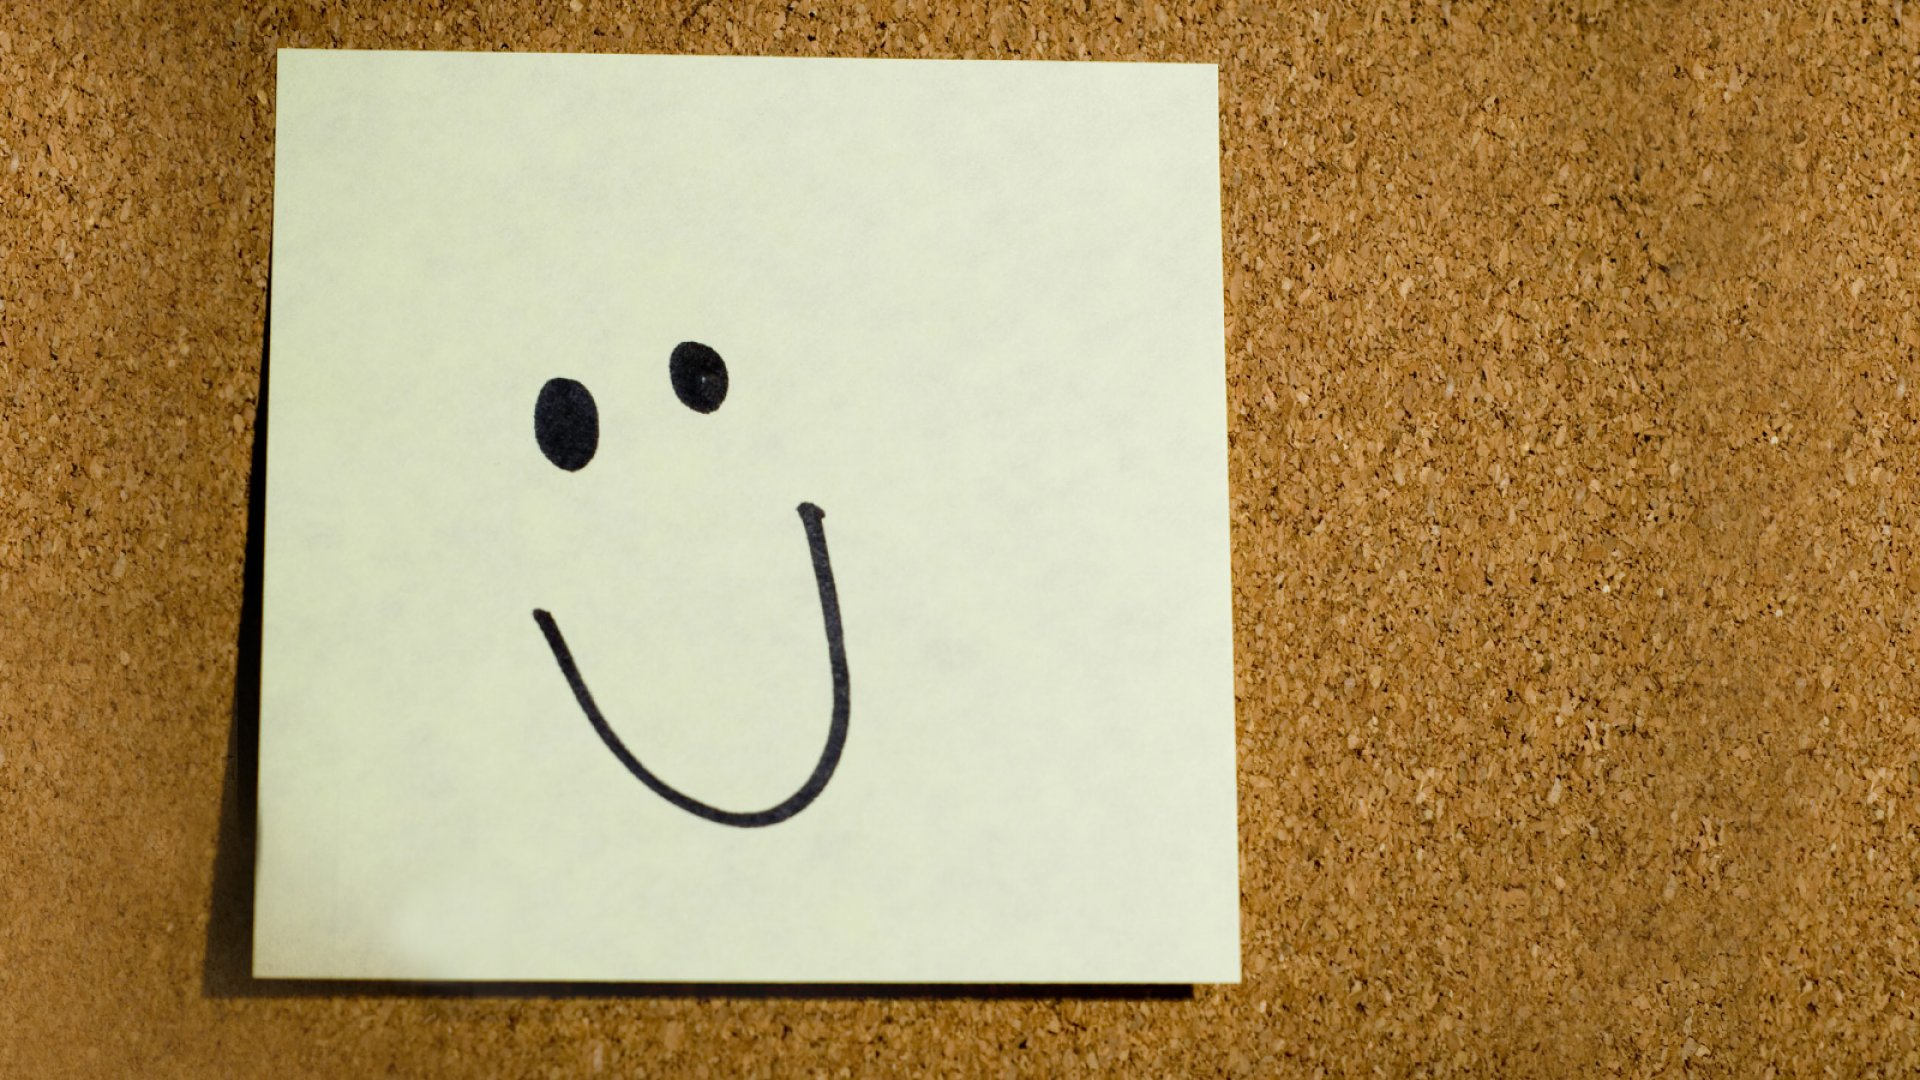 You Can Buy Employee Happiness. But Should You?